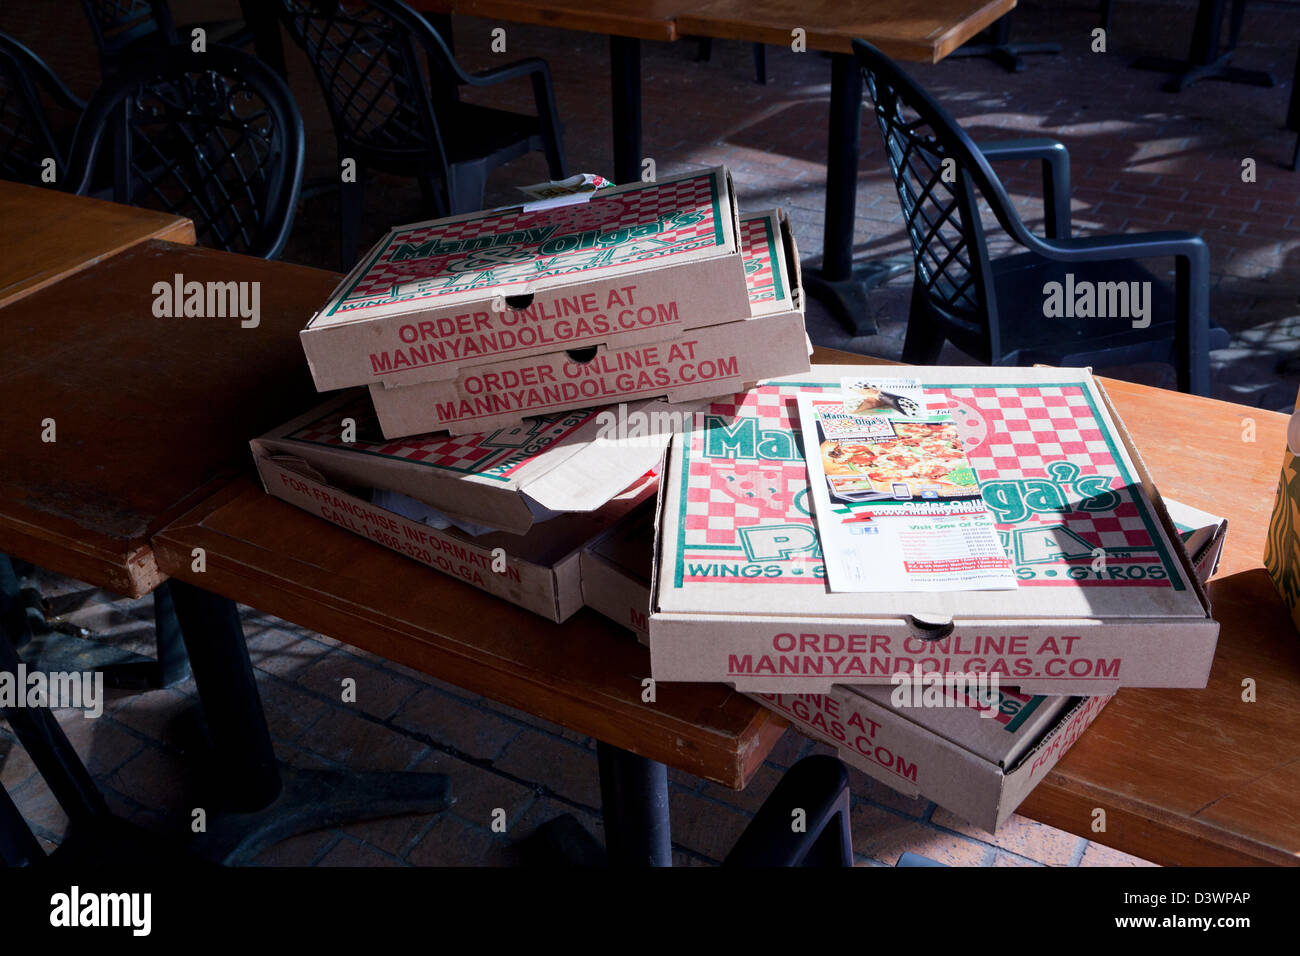 Empty pizza boxes on table - Stock Image